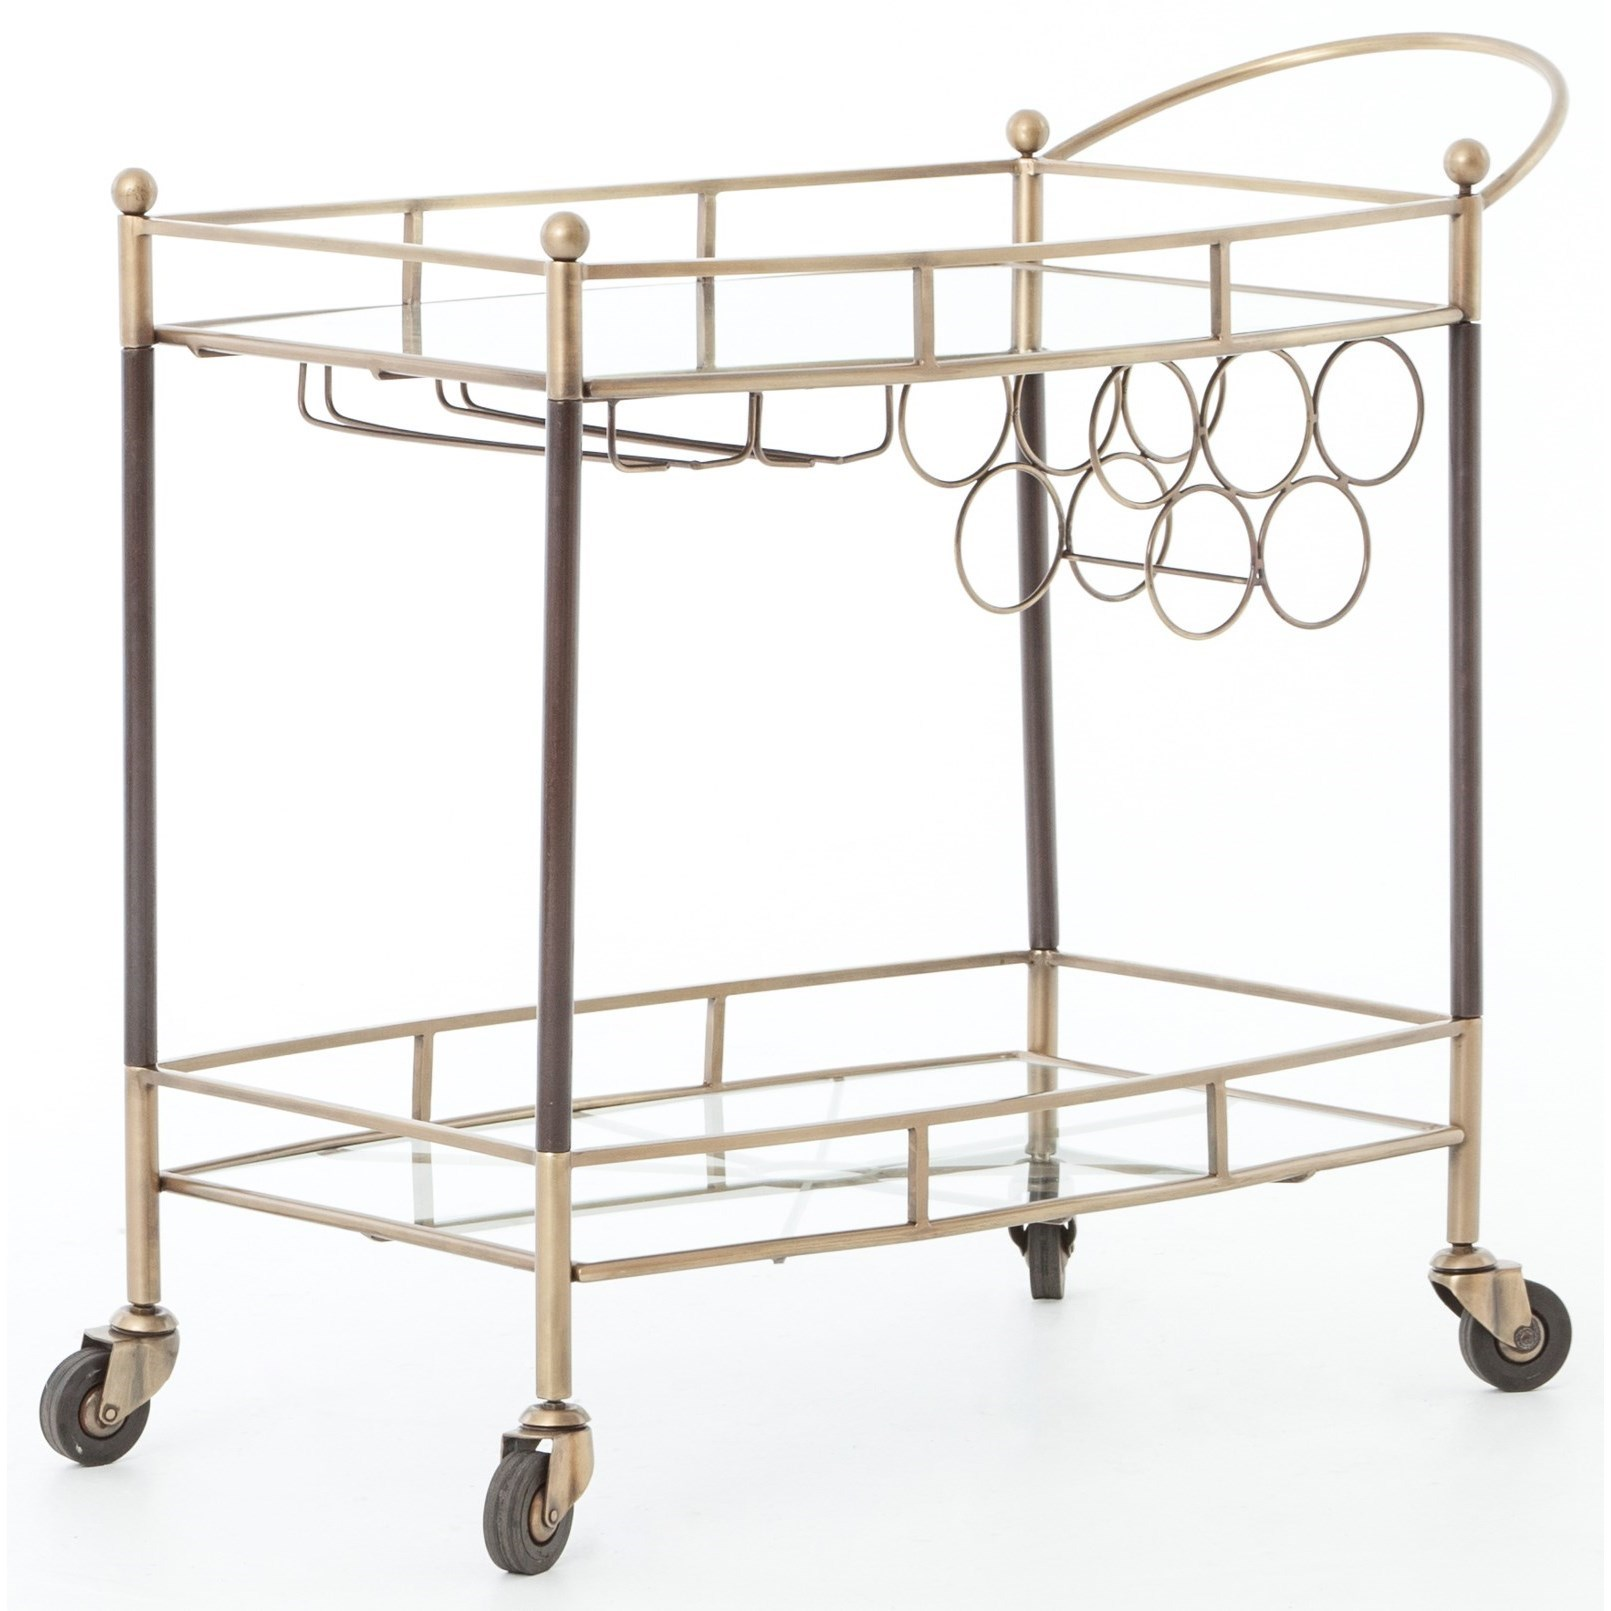 Four Hands Asher Coles Bar Cart - Item Number: IASR-004KD